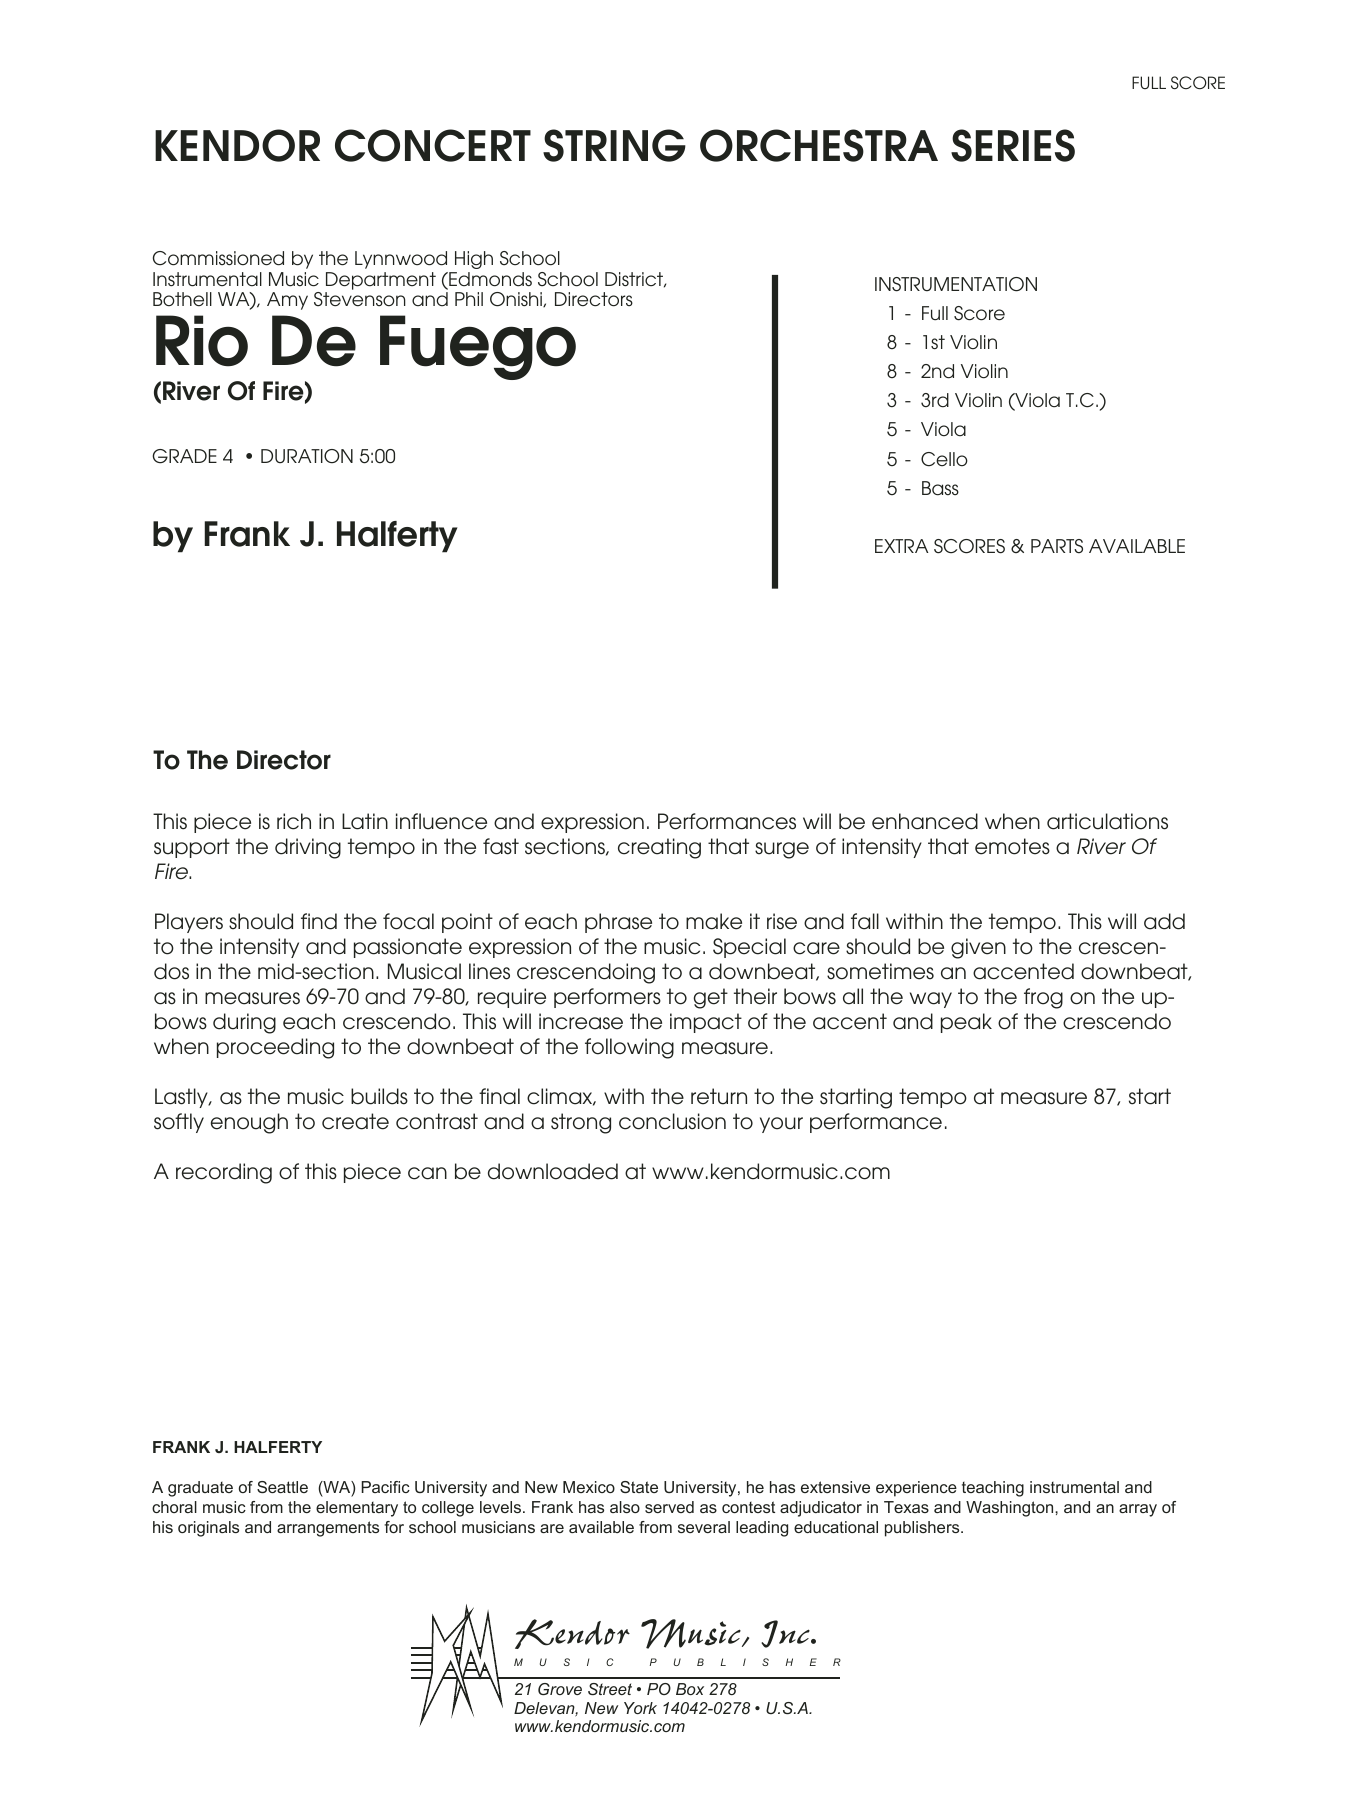 Rio De Fuego (River Of Fire) - Full Score Sheet Music